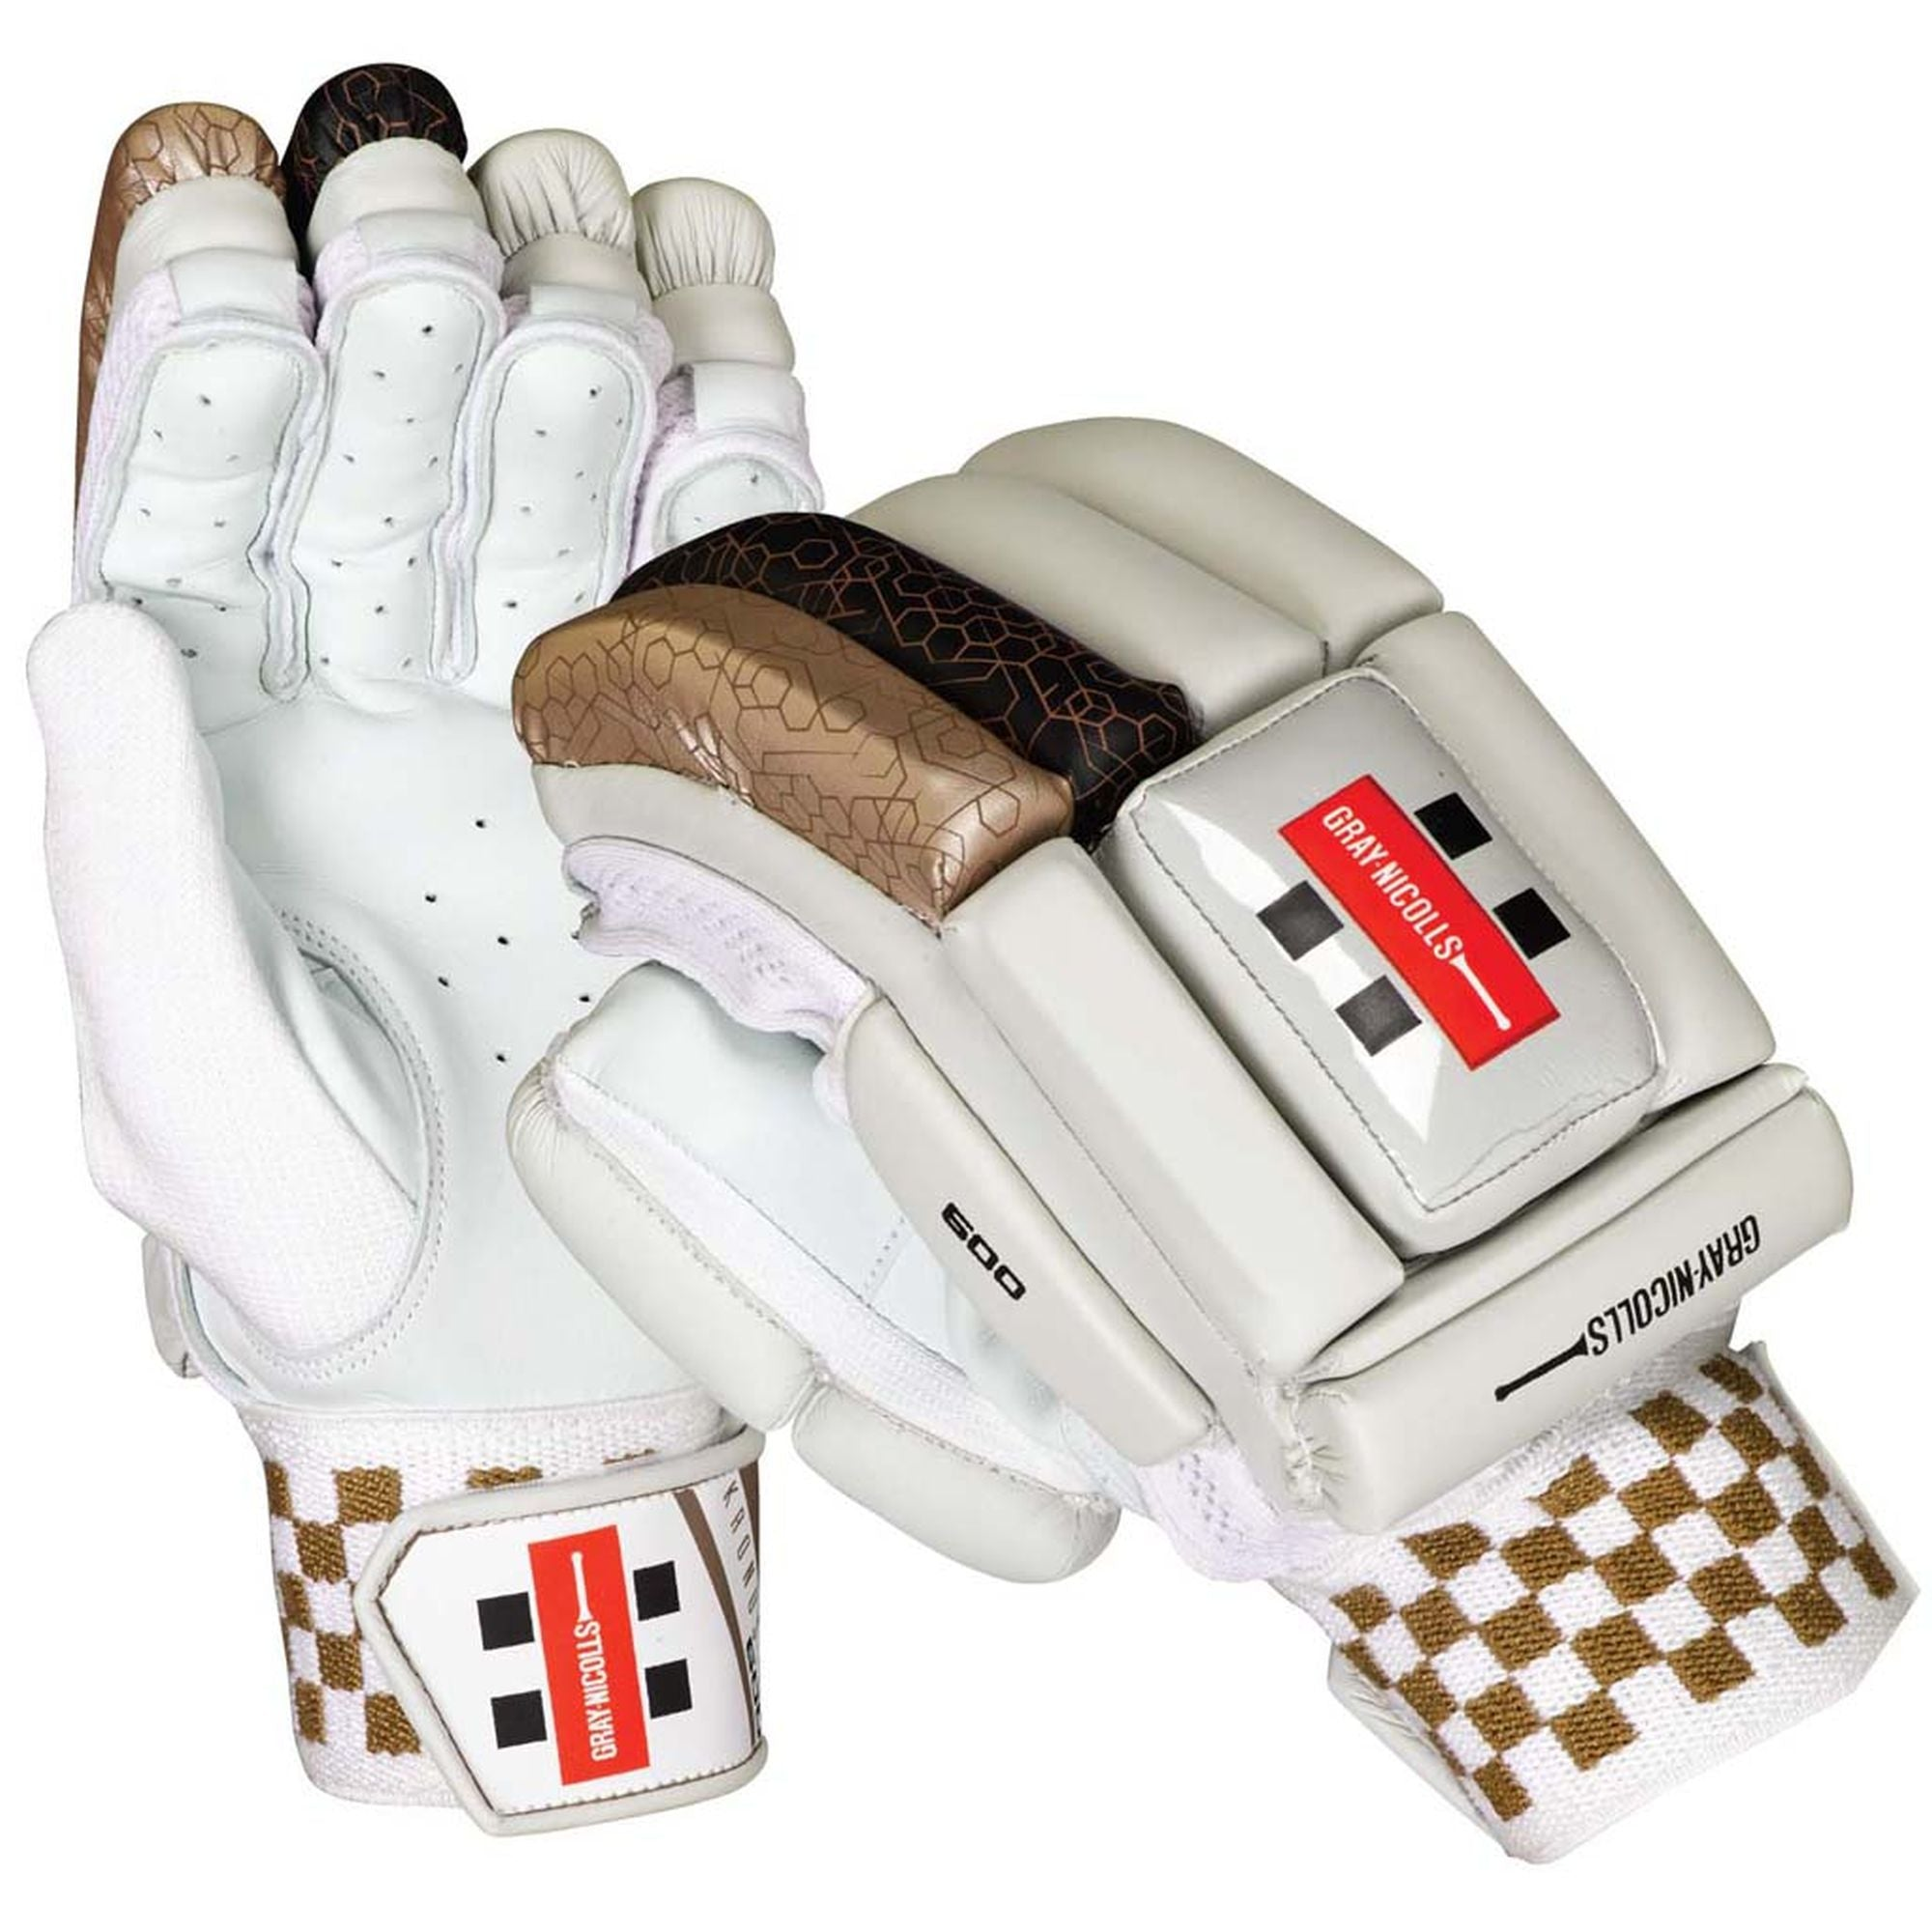 b2c66713278 Gray-Nicolls Kronus 600 Batting Gloves – The Cricket Warehouse